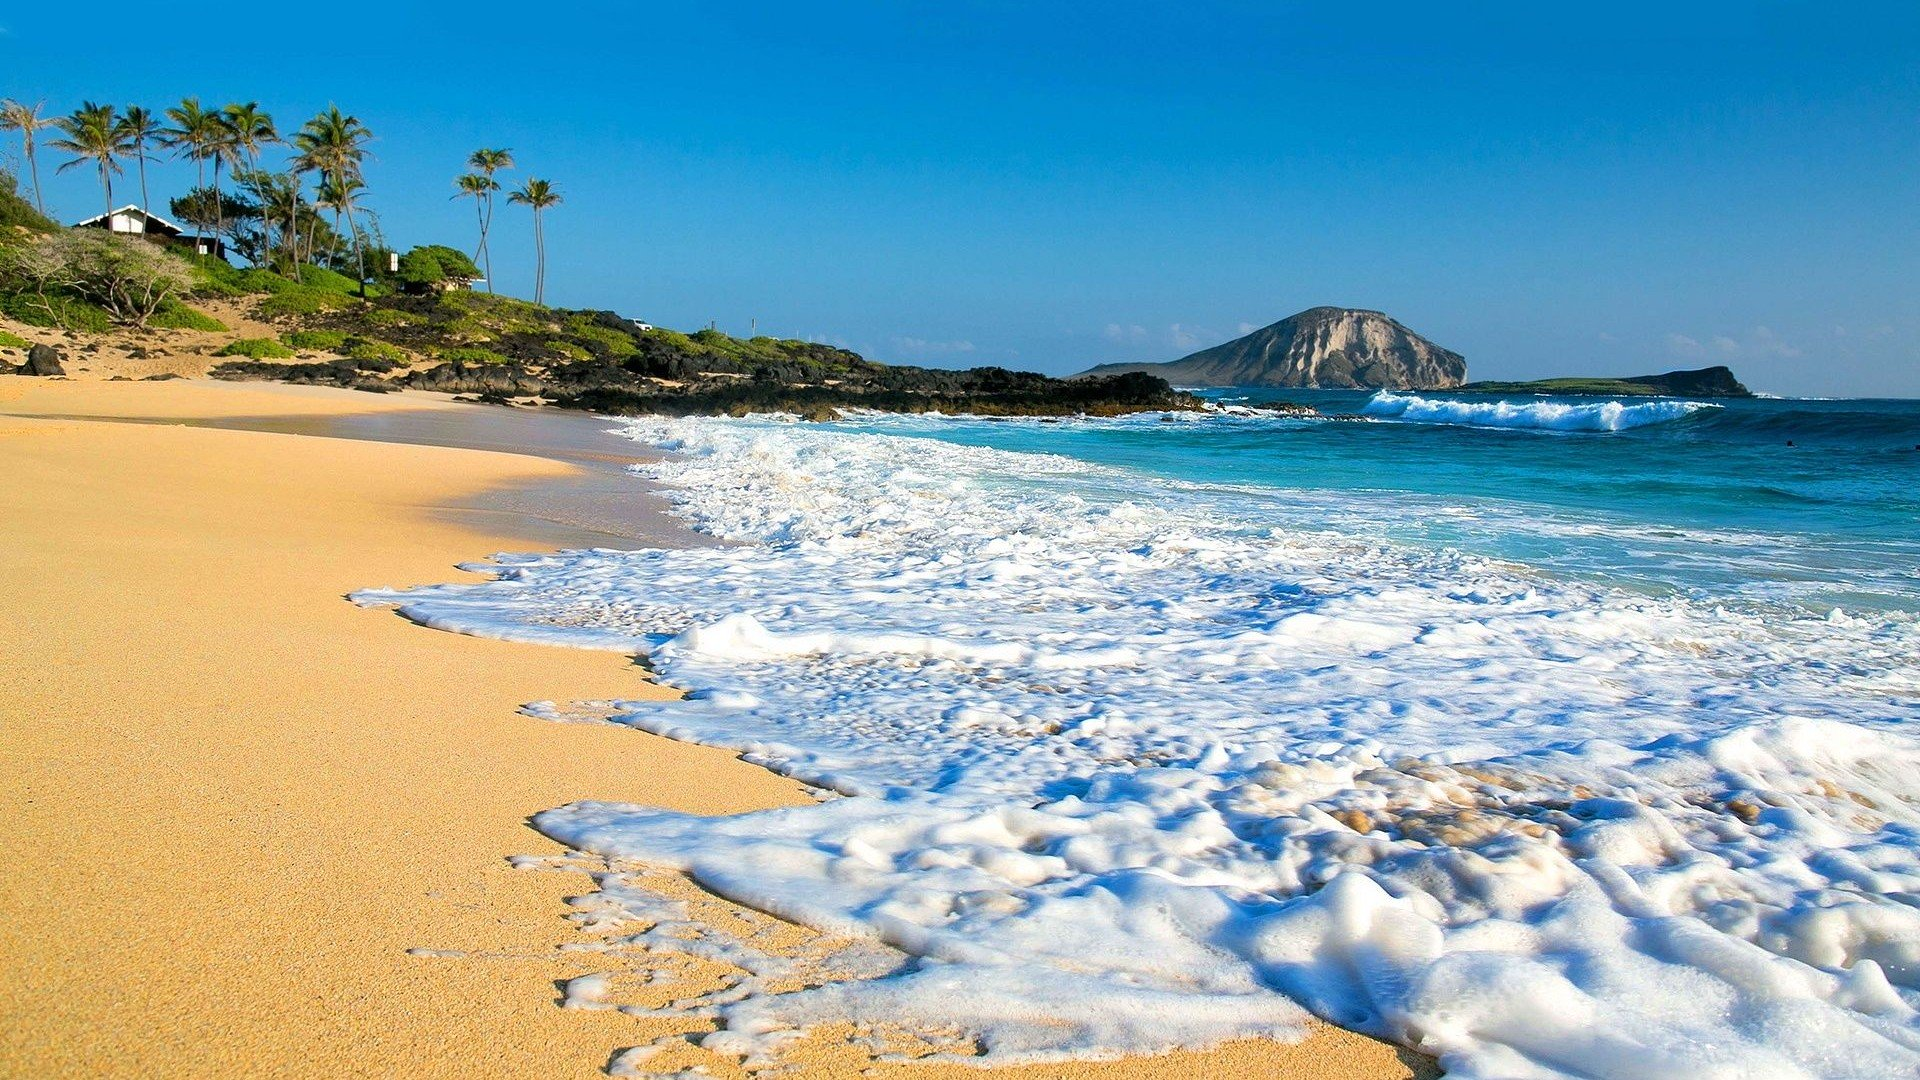 40 Free HD Hawaii Wallpapers For Download